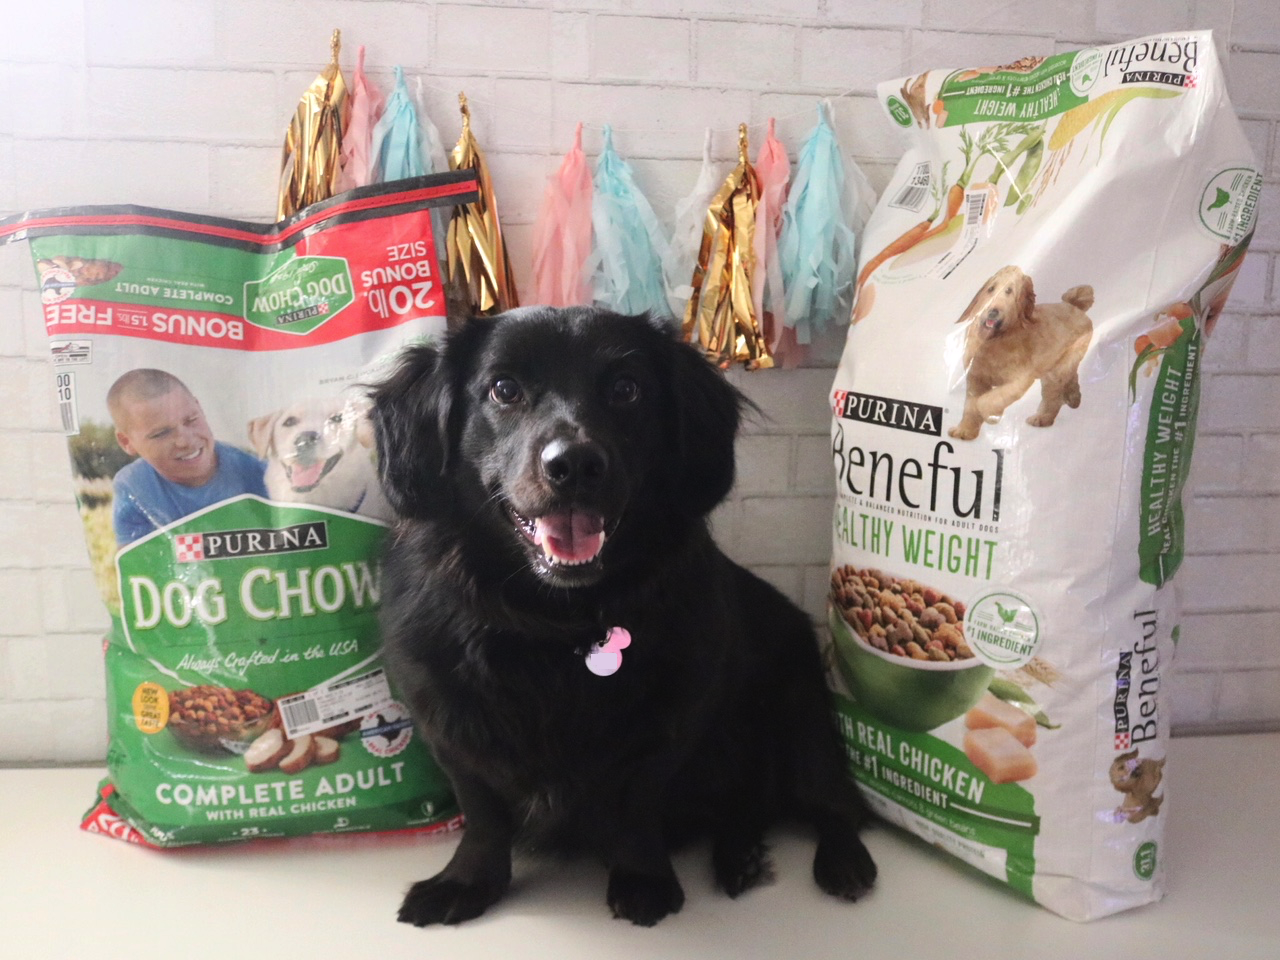 Why You Should Re-Think What You're Feeding Your Dog